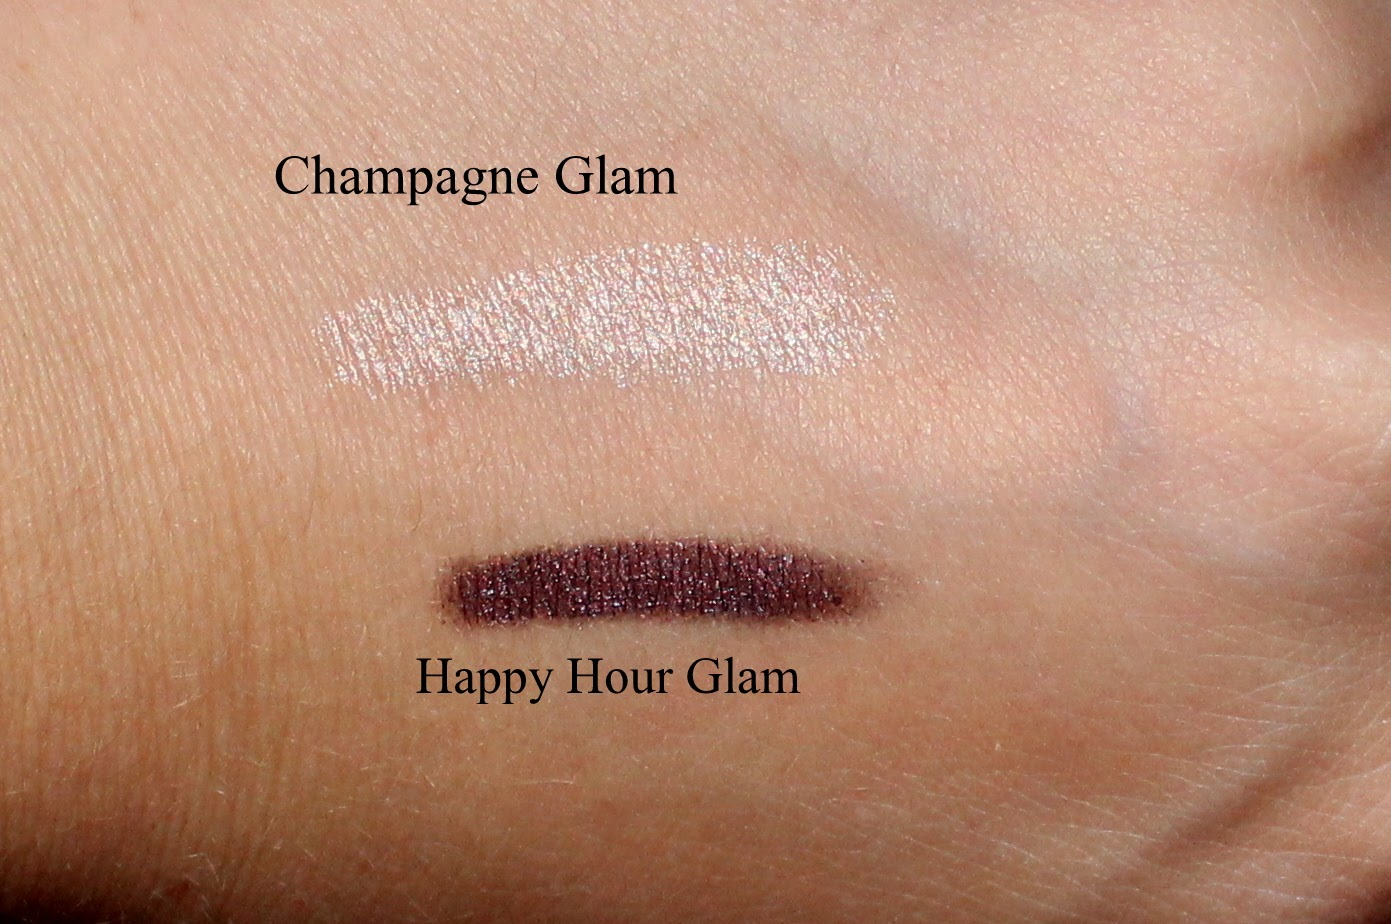 Lise Watier 24 HRS Glam Eyeshadow Swatches